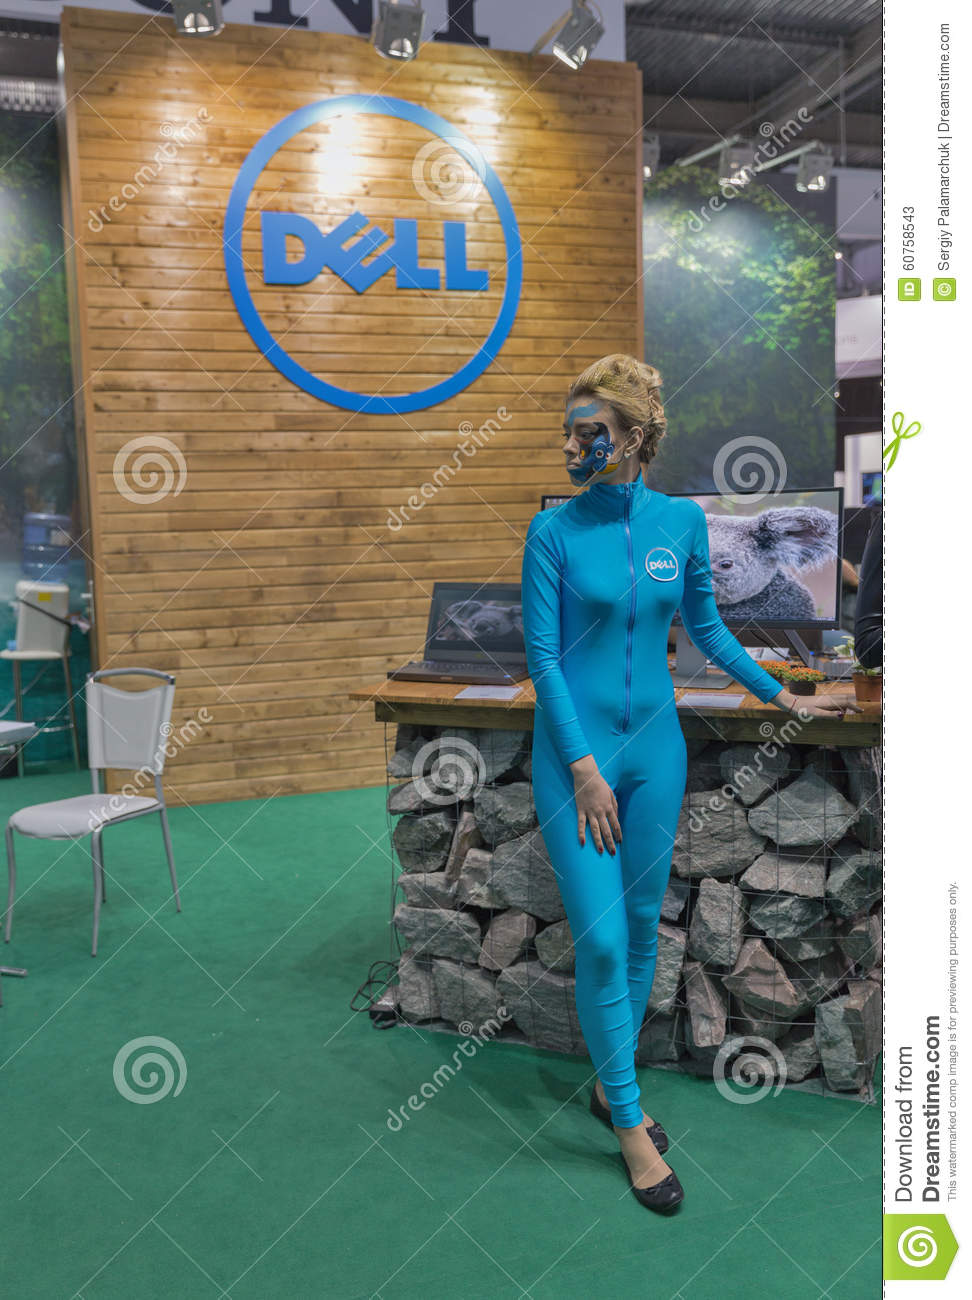 Dell company booth at cee 2015 the largest electronics for Largest craft shows in the us